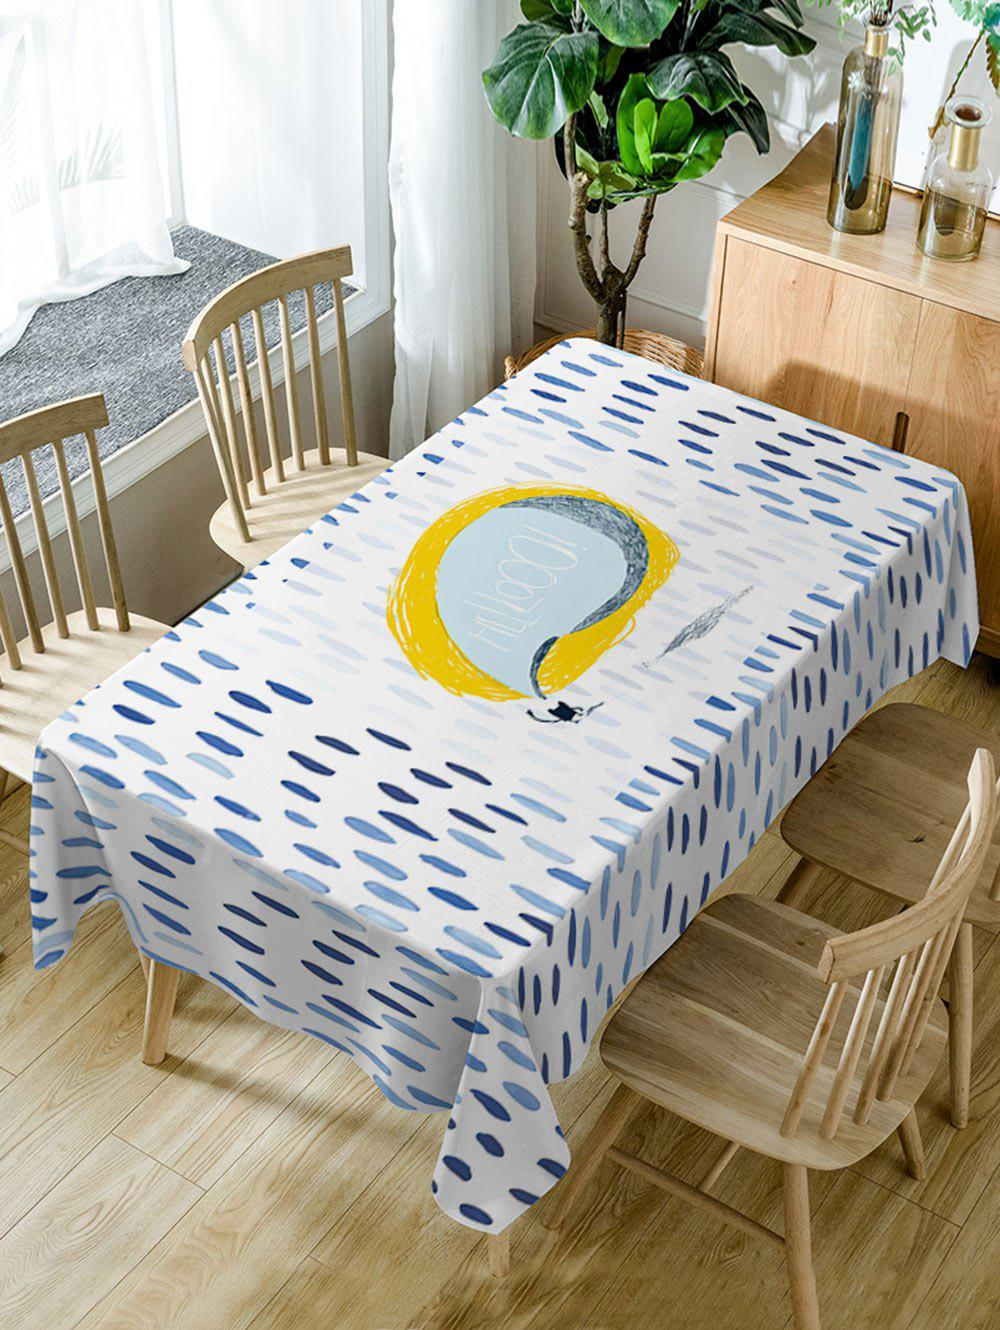 Rain Pattern Fabric Waterproof Table Cloth - COLORMIX W60 INCH * L84 INCH